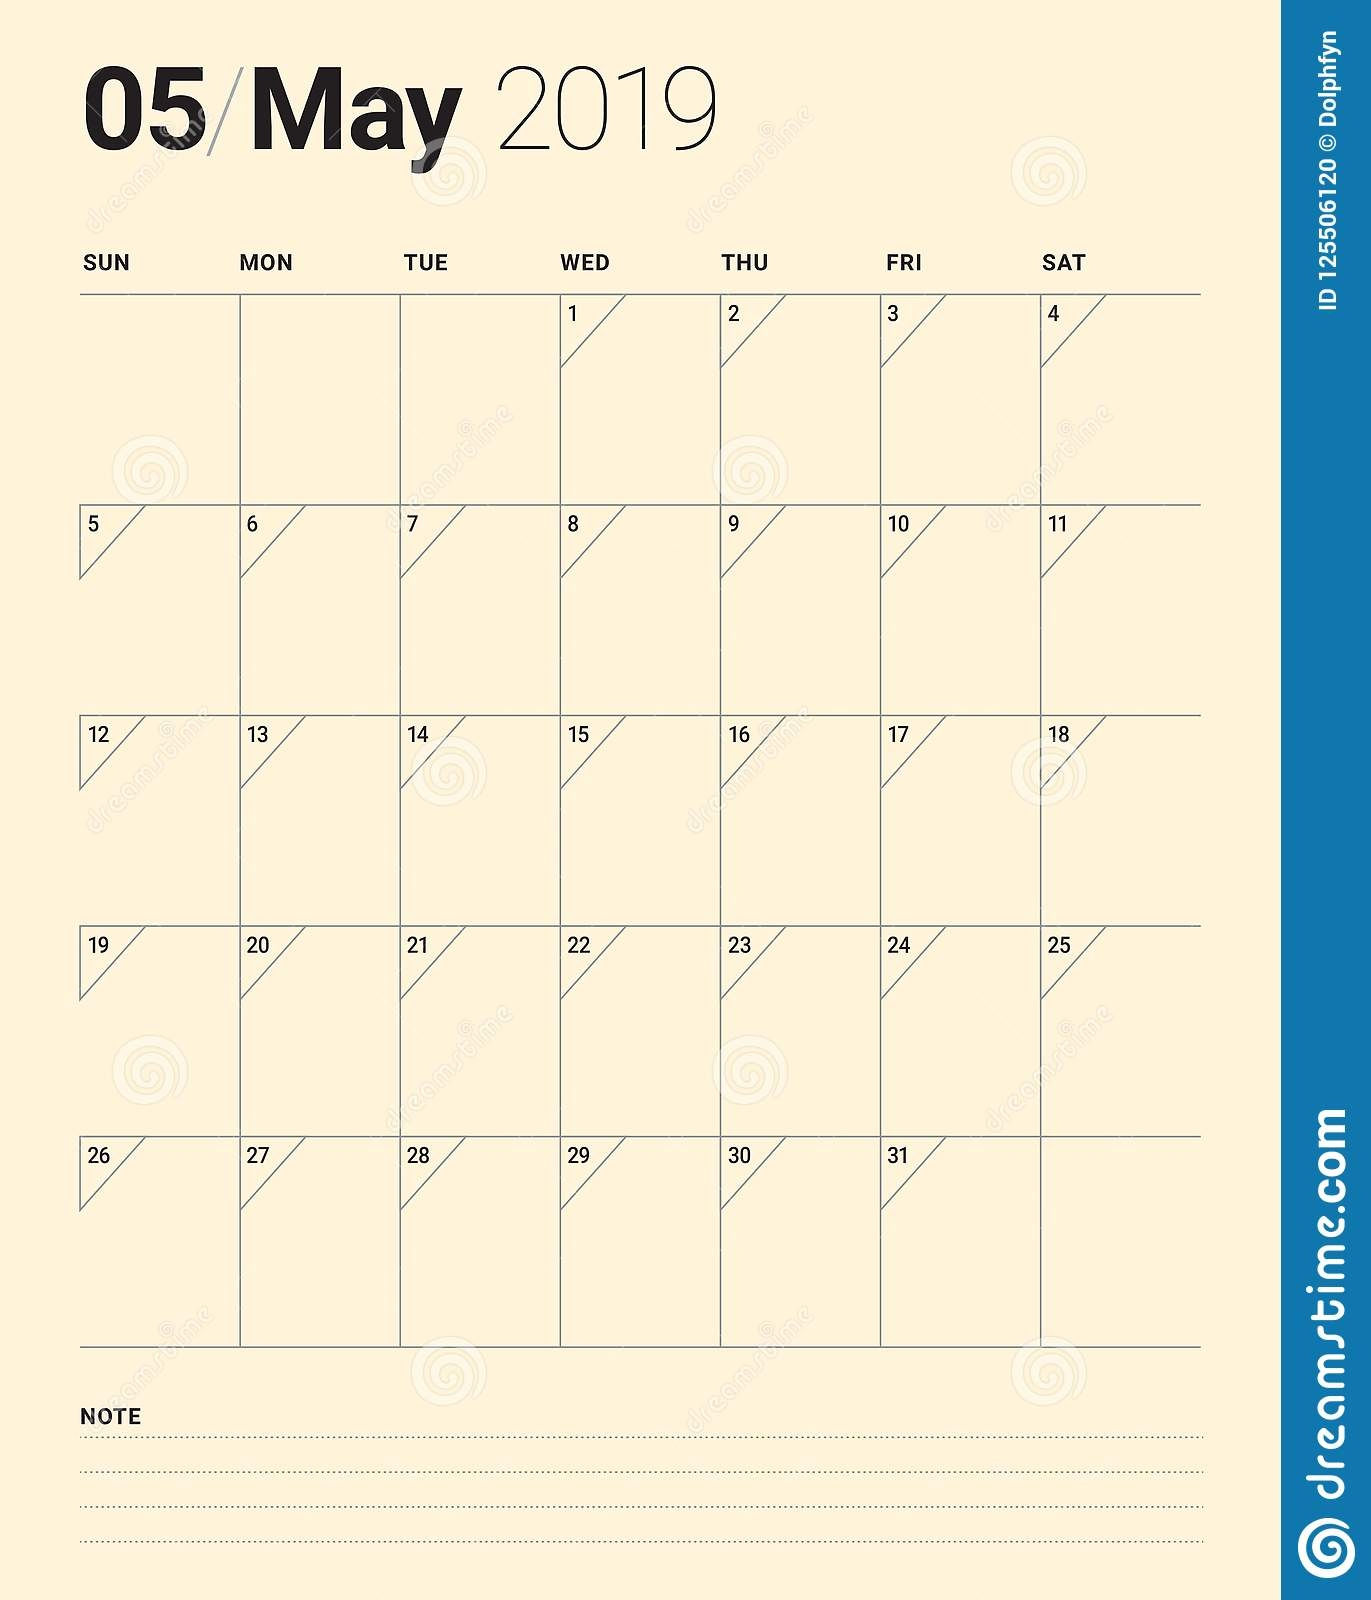 may 2019 desk calendar vector illustration stock vector::May 2019 Desk Calendar